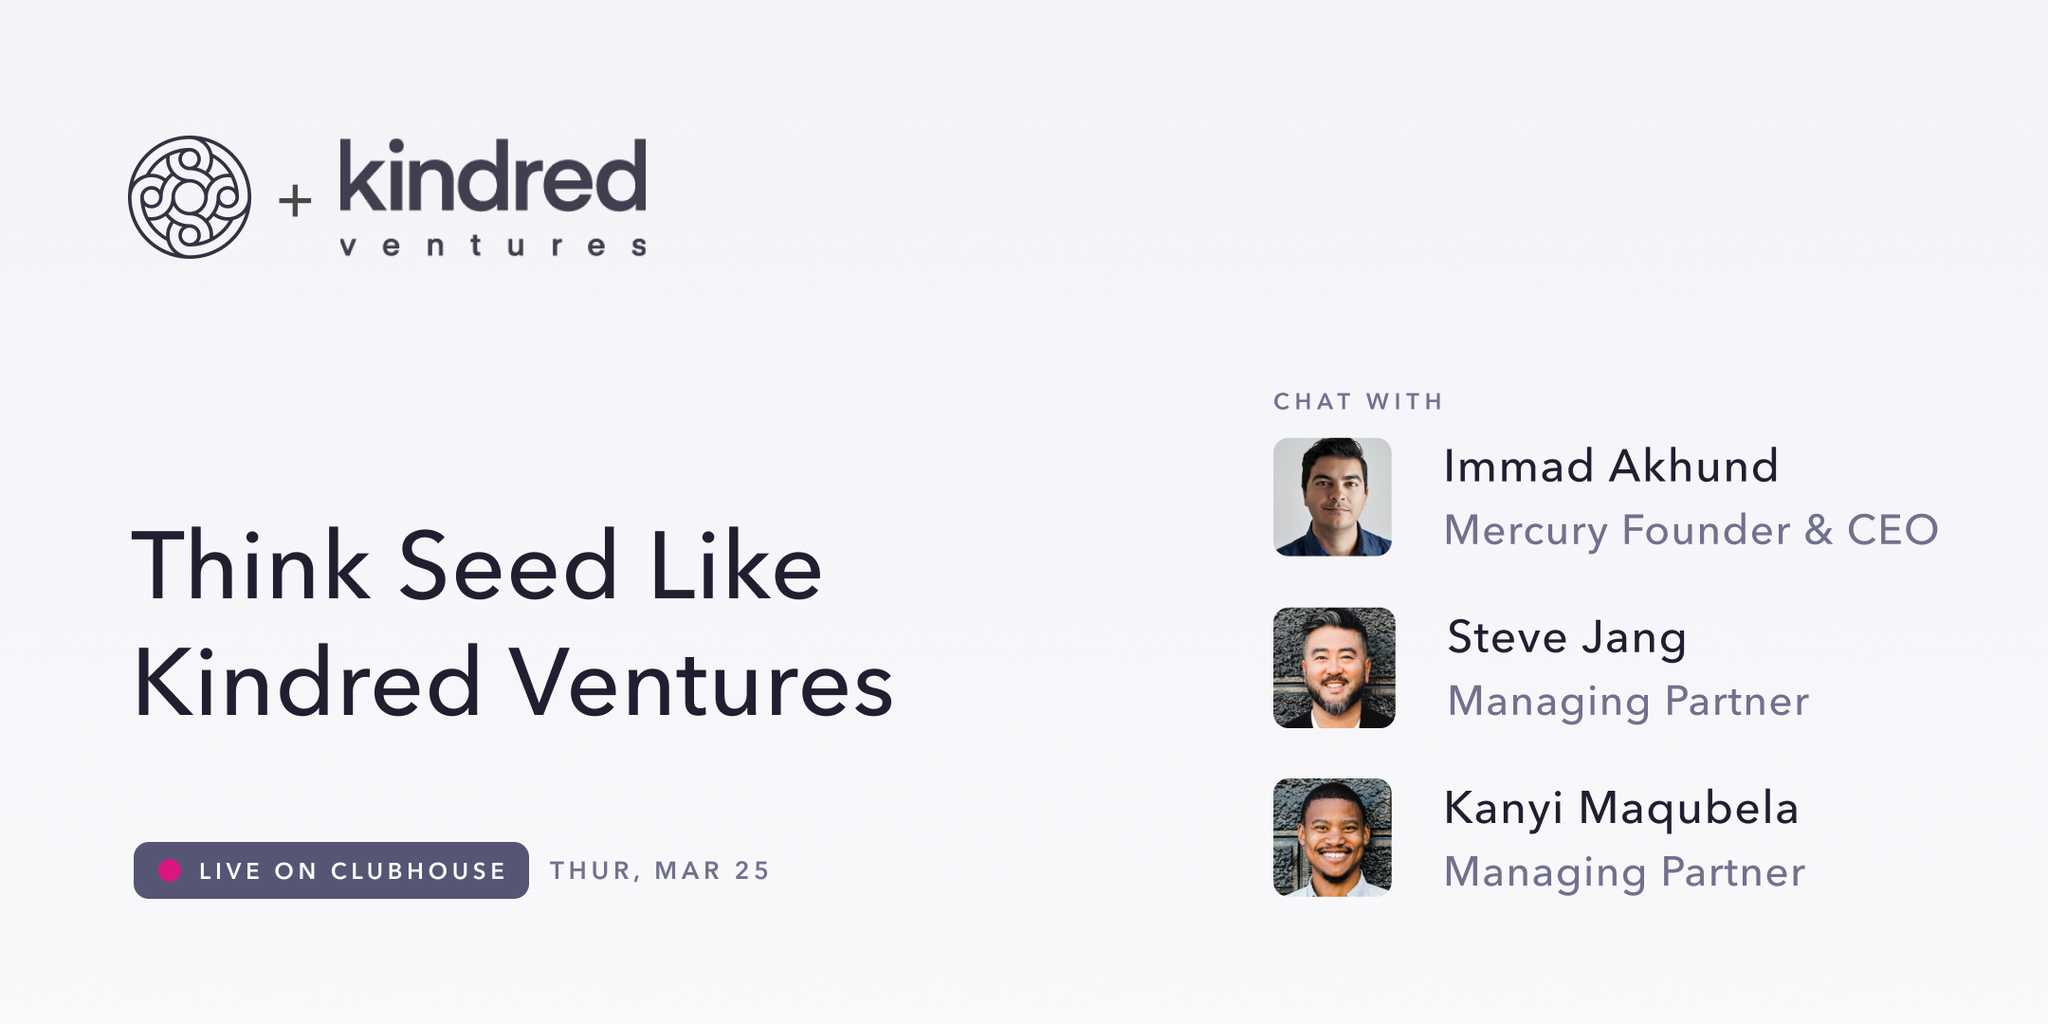 think seed like kindred ventures